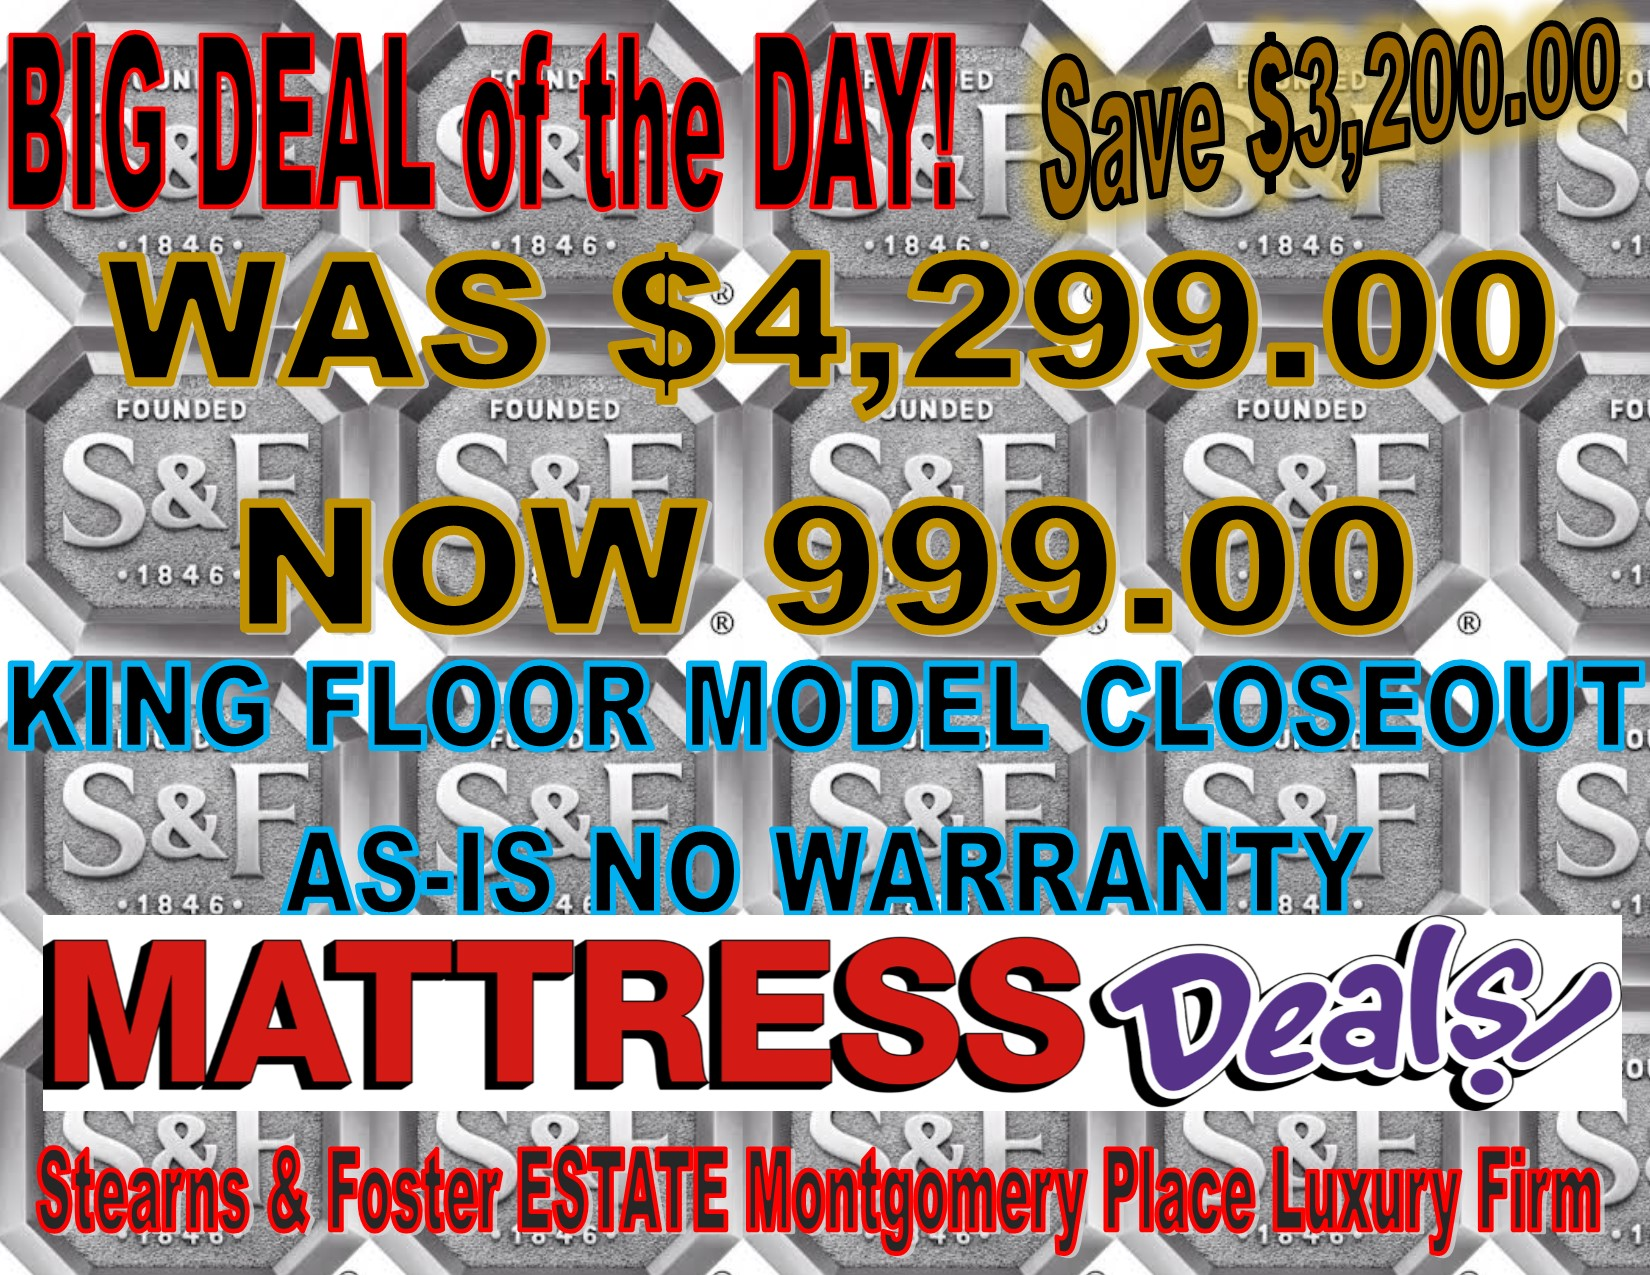 Mattress Deals image 49